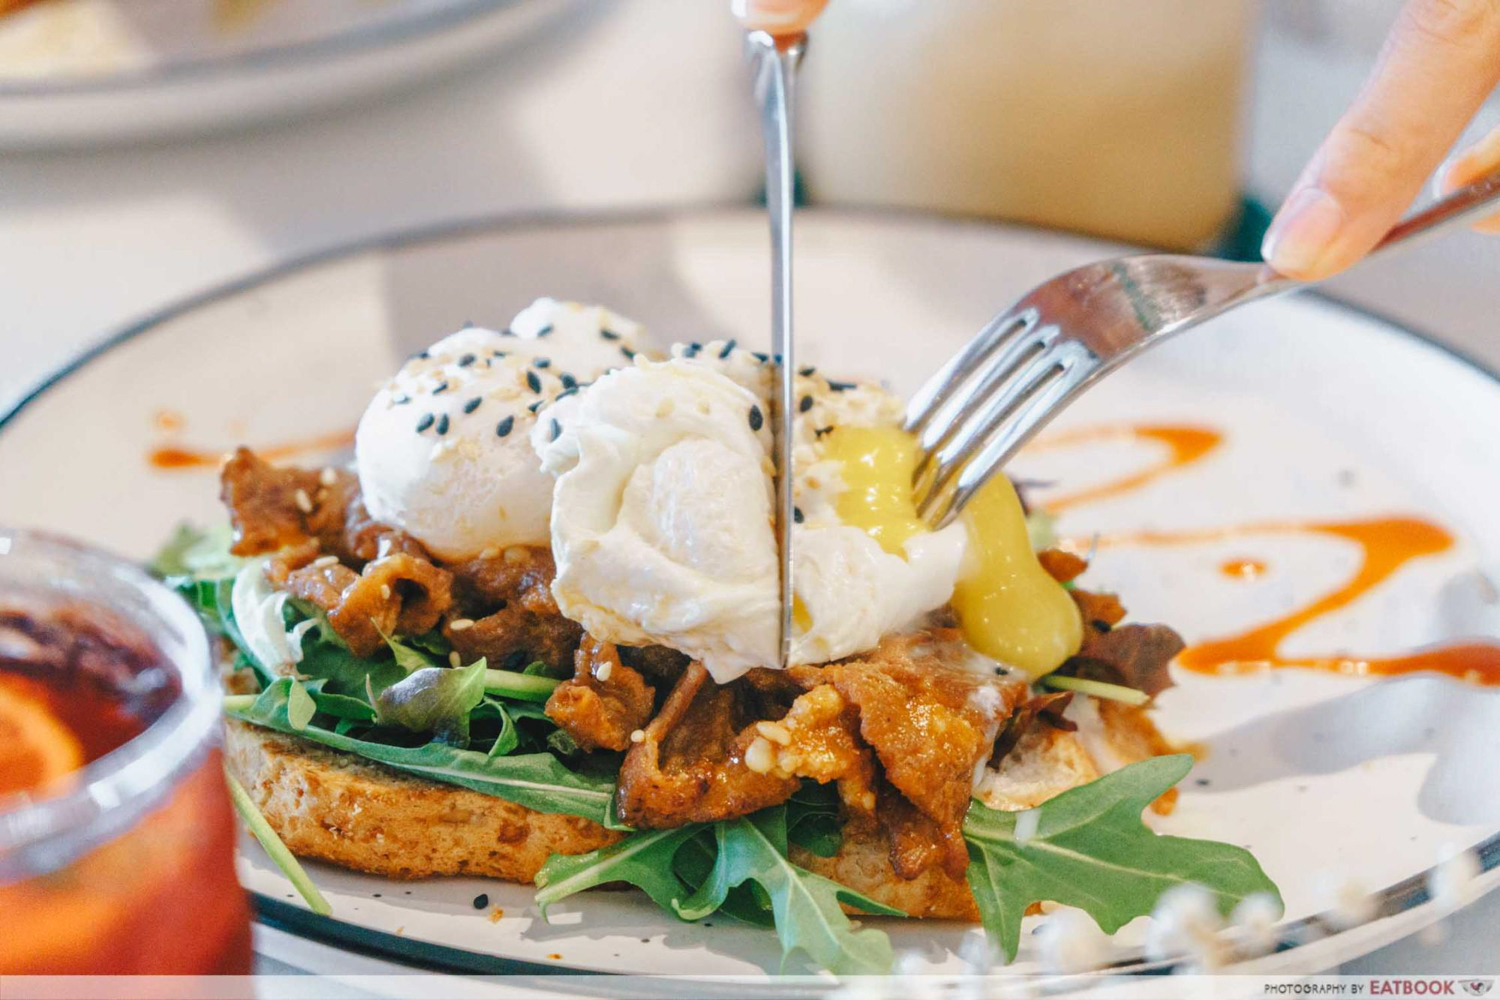 Two Cranes - Poached egg